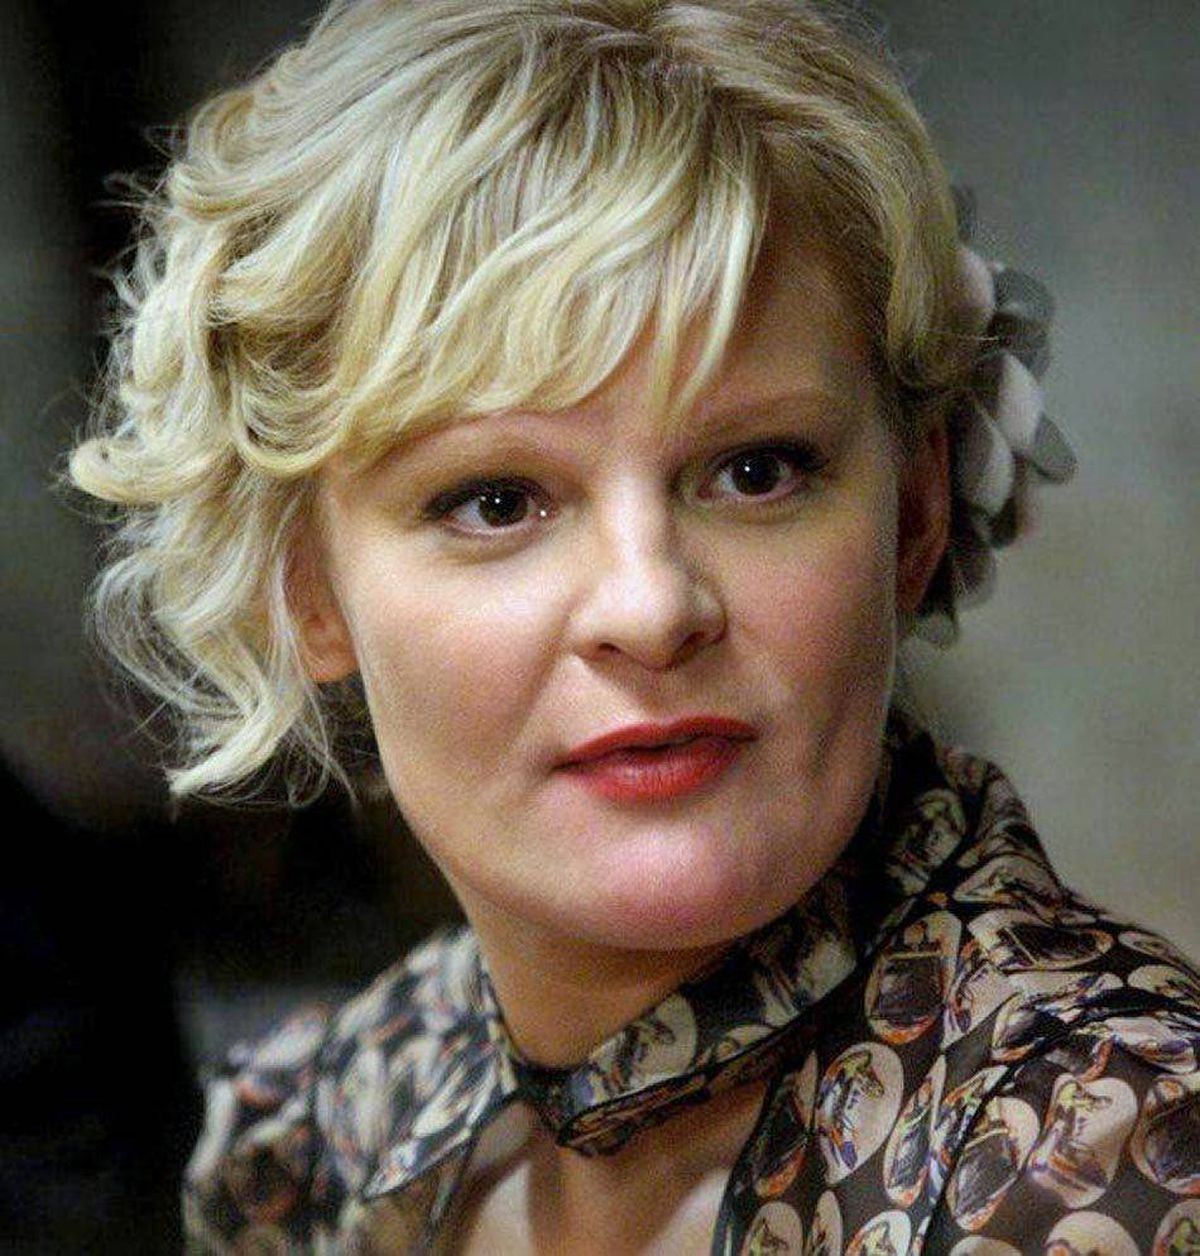 DRAMA The Good Wife CBS, Global, 10 p.m. Actress Martha Plimpton is a busy lady these days. Most of the time she can be seen on the Fox sitcom Raising Hope playing a grandmother (a role far too young for someone who turned 40 a few months ago). Tonight, Plimpton returns to this sophomore drama in her semi-recurring role of the tough solicitor Patti Nyholm, who has squared off against lawyer Alicia Florrick (Julianna Margulies) on previous occasions. Tonight the legal eagles lock horns again on a controversial case involving a liver transplant. At the same time, Alicia deals with the emotional fallout of the fling her assistant Kalinda (Archie Panjabi) had with her sleazy husband Peter (Chris Noth).